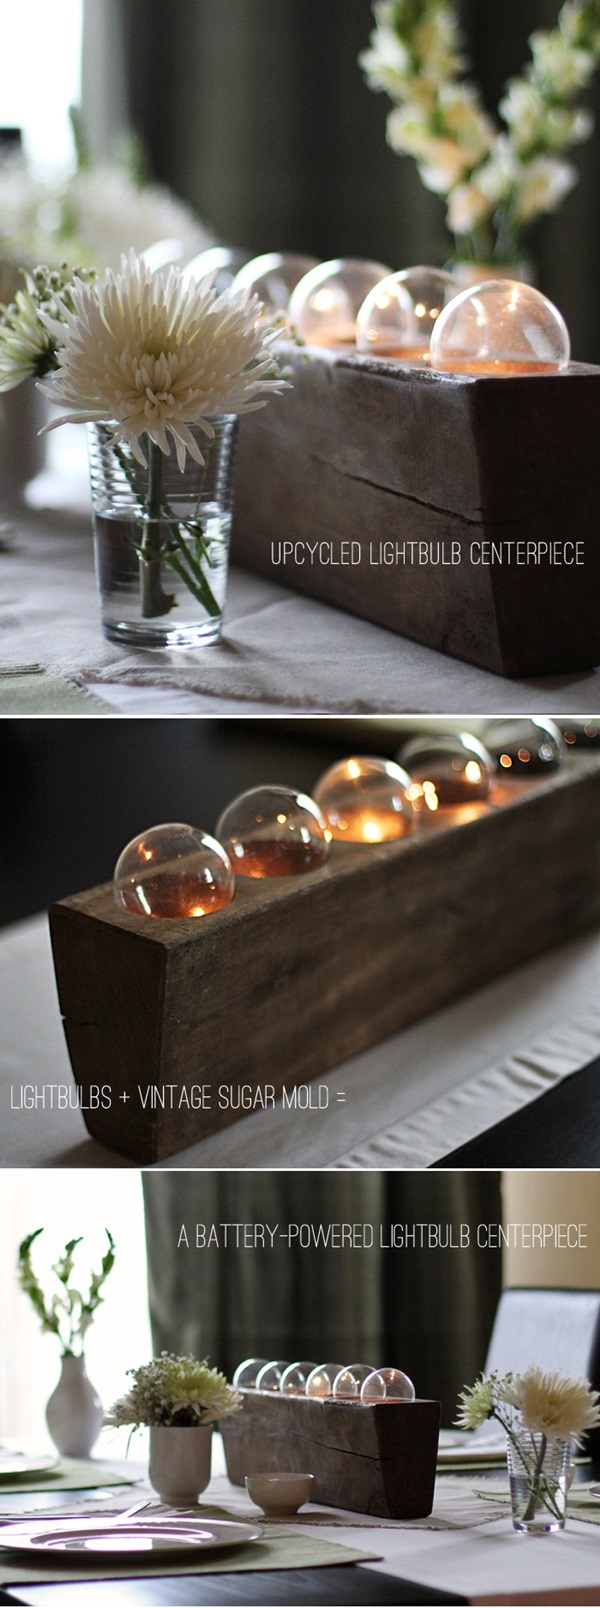 19 Brilliant Ways to Repurpose Old Light Bulbs 16